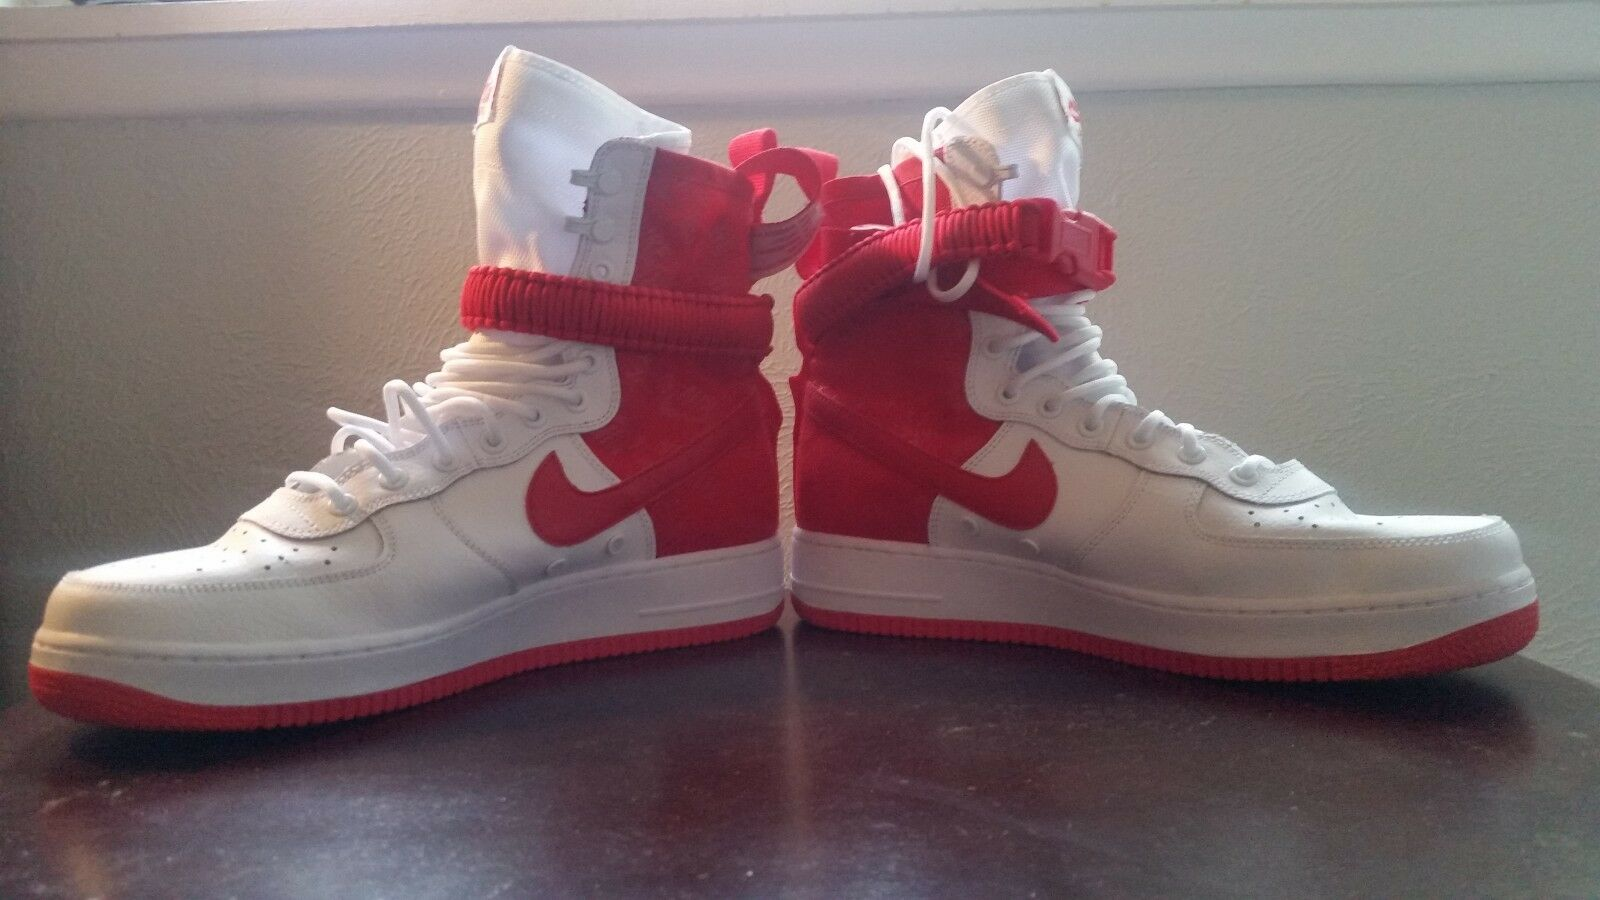 NIKE Men's High Air Force 1 Hightop shoes Sneaker Red White (Size 11)